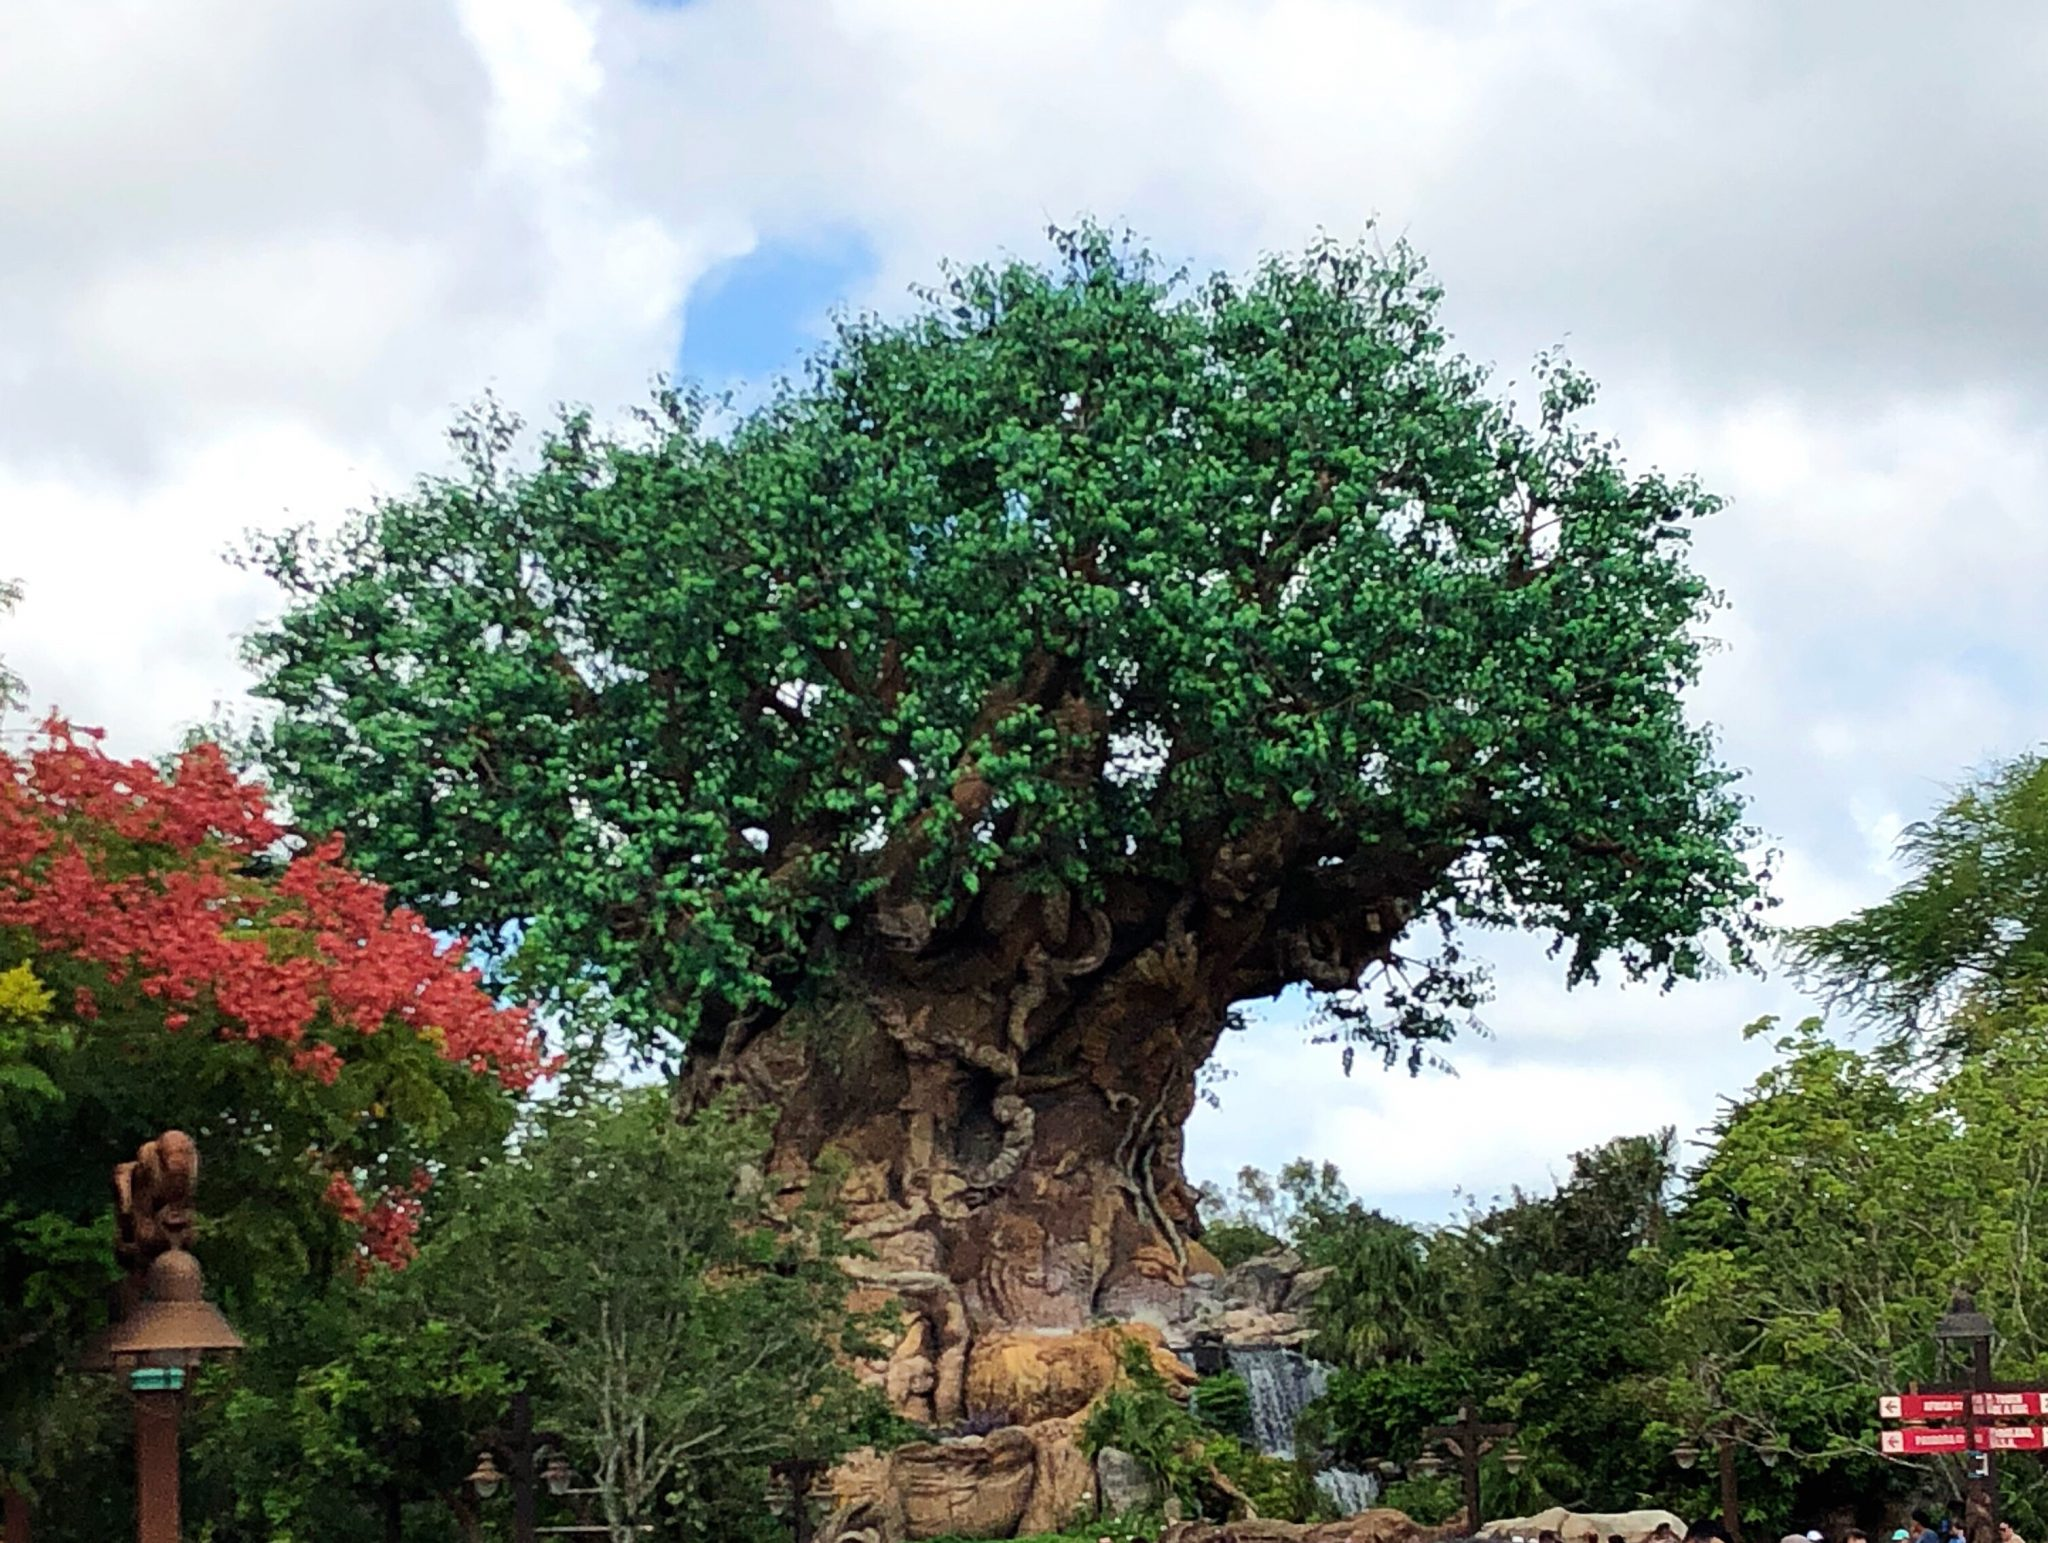 A Twentysomething's Guide to Walt Disney World: Animal Kingdom | herlifeinruins